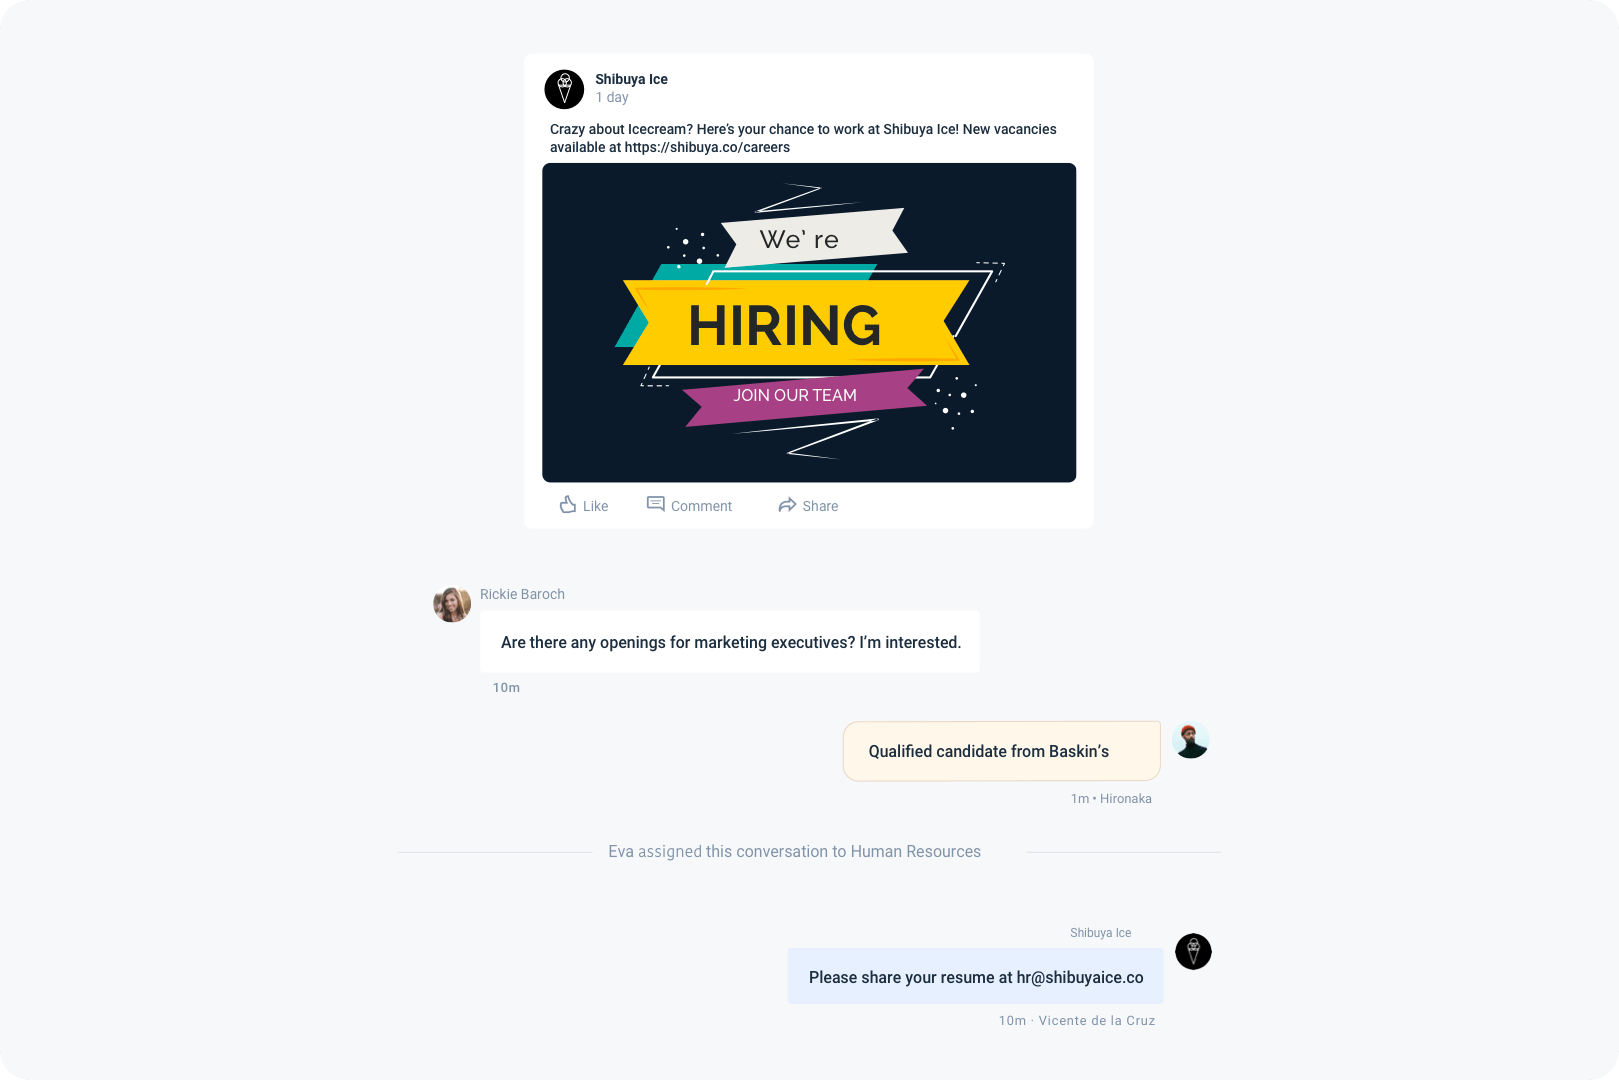 recruitment-with-linkedin